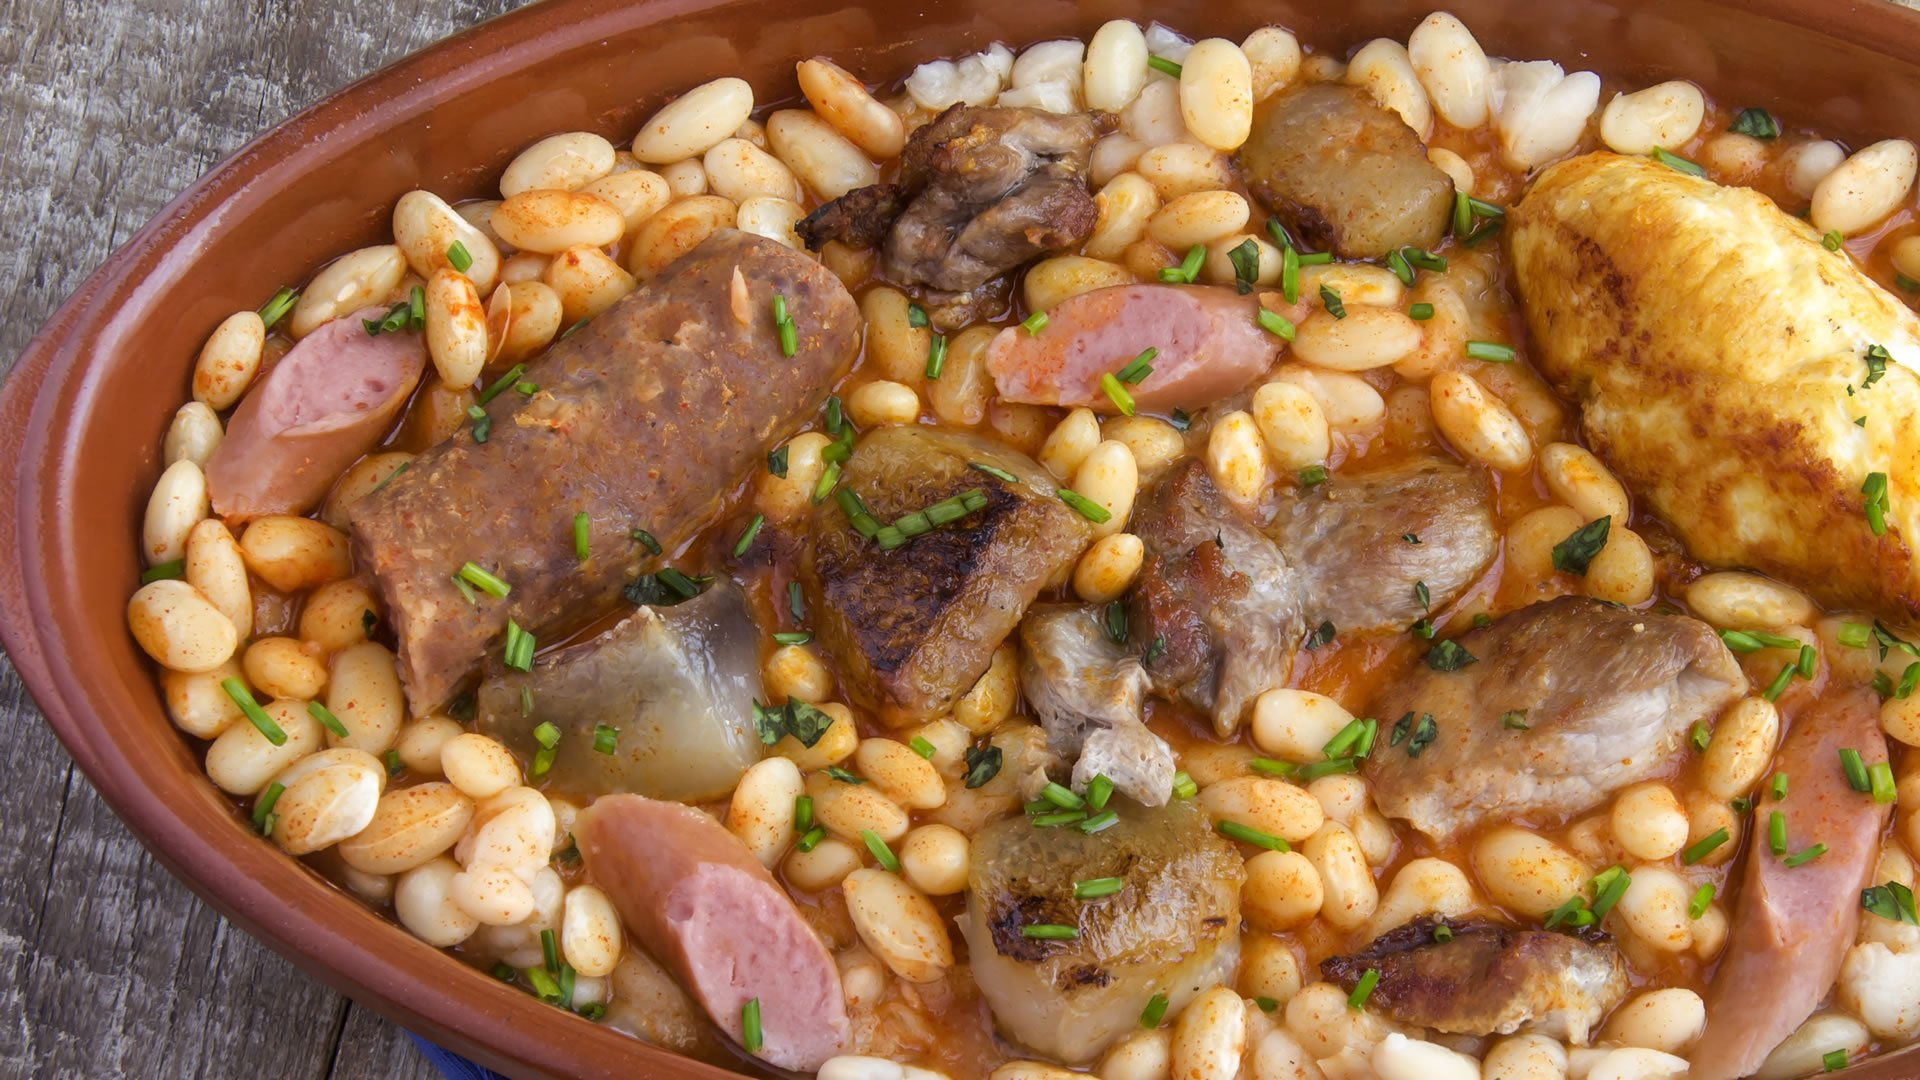 Cassoulet for Paris francia comida tipica